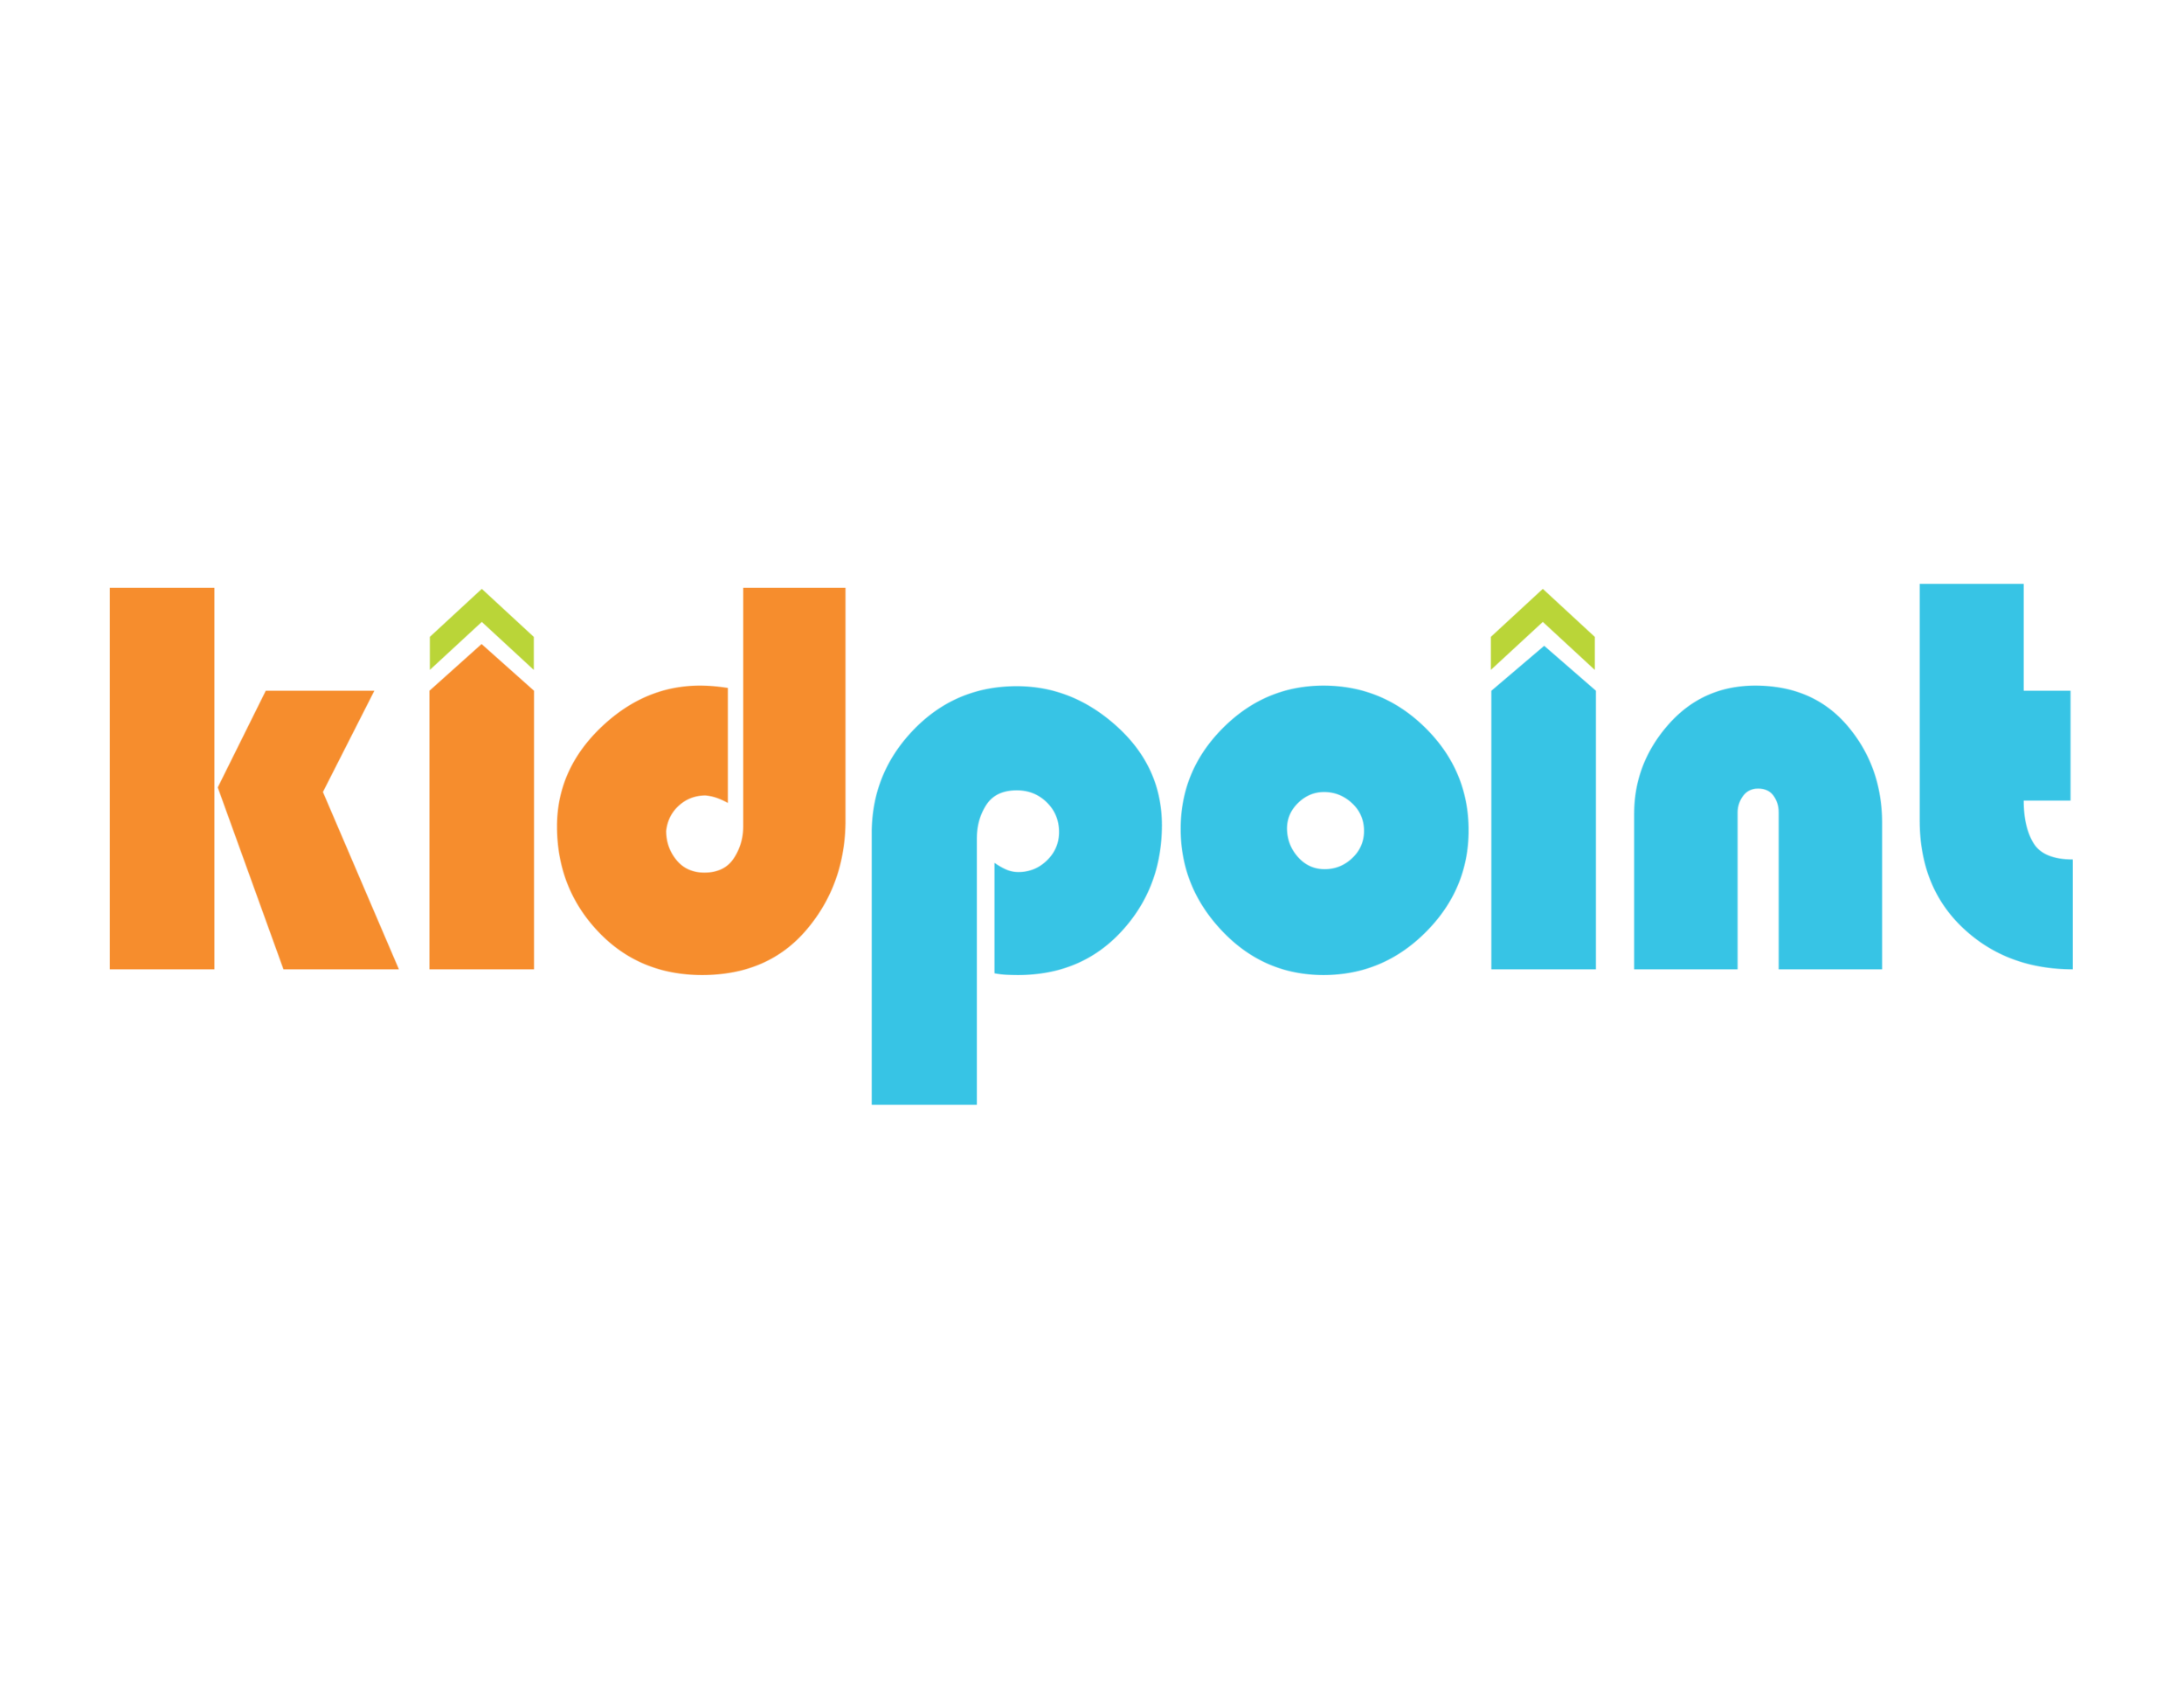 Kidpoint.png